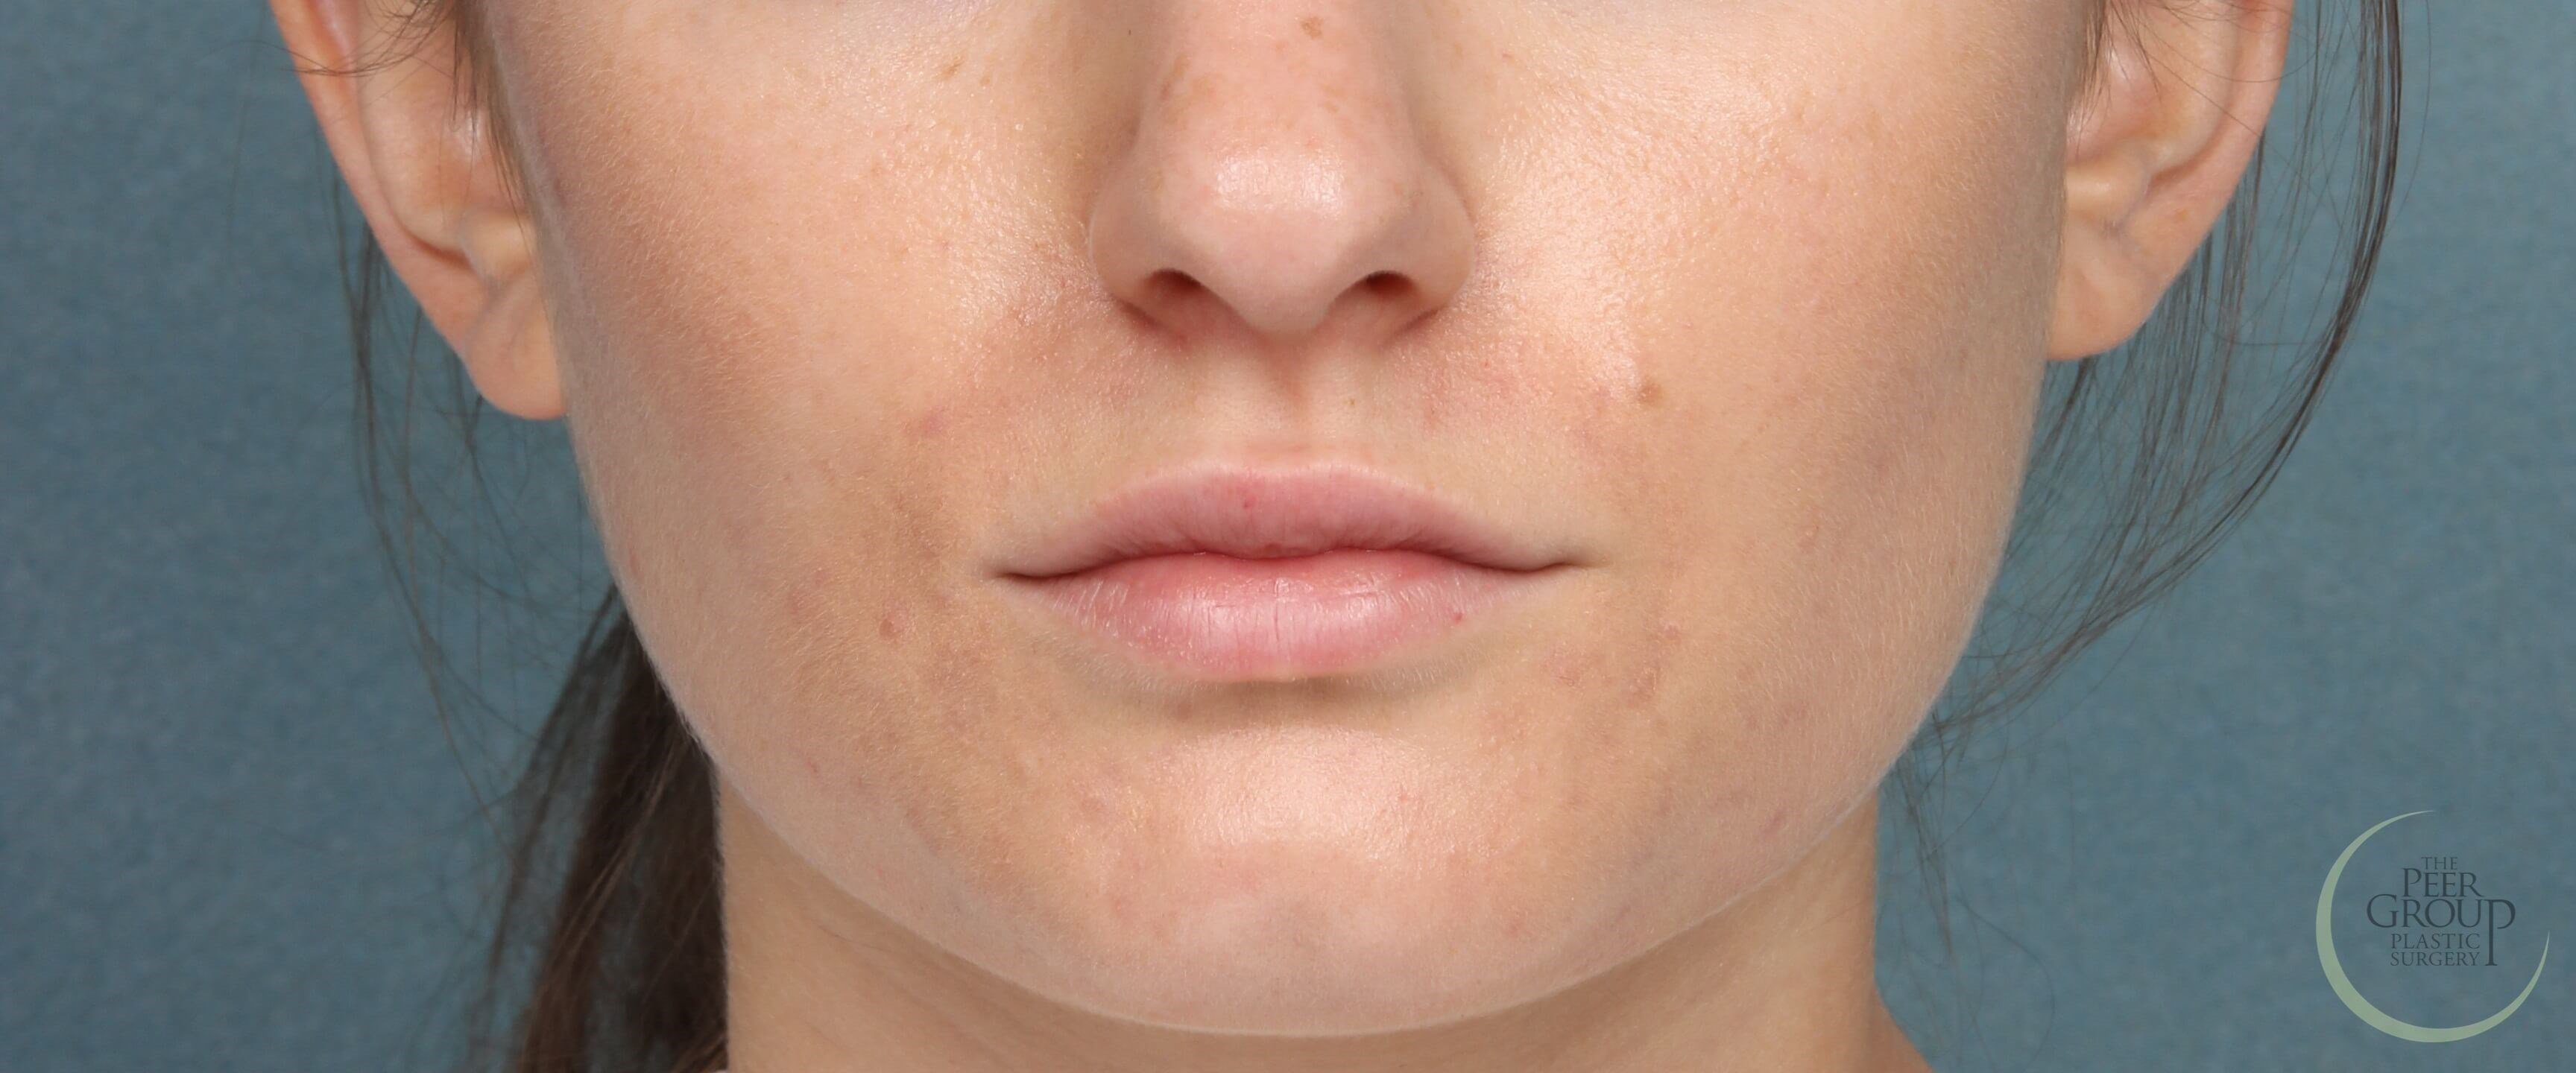 Fuller Lips with Juvederm Before Juvederm